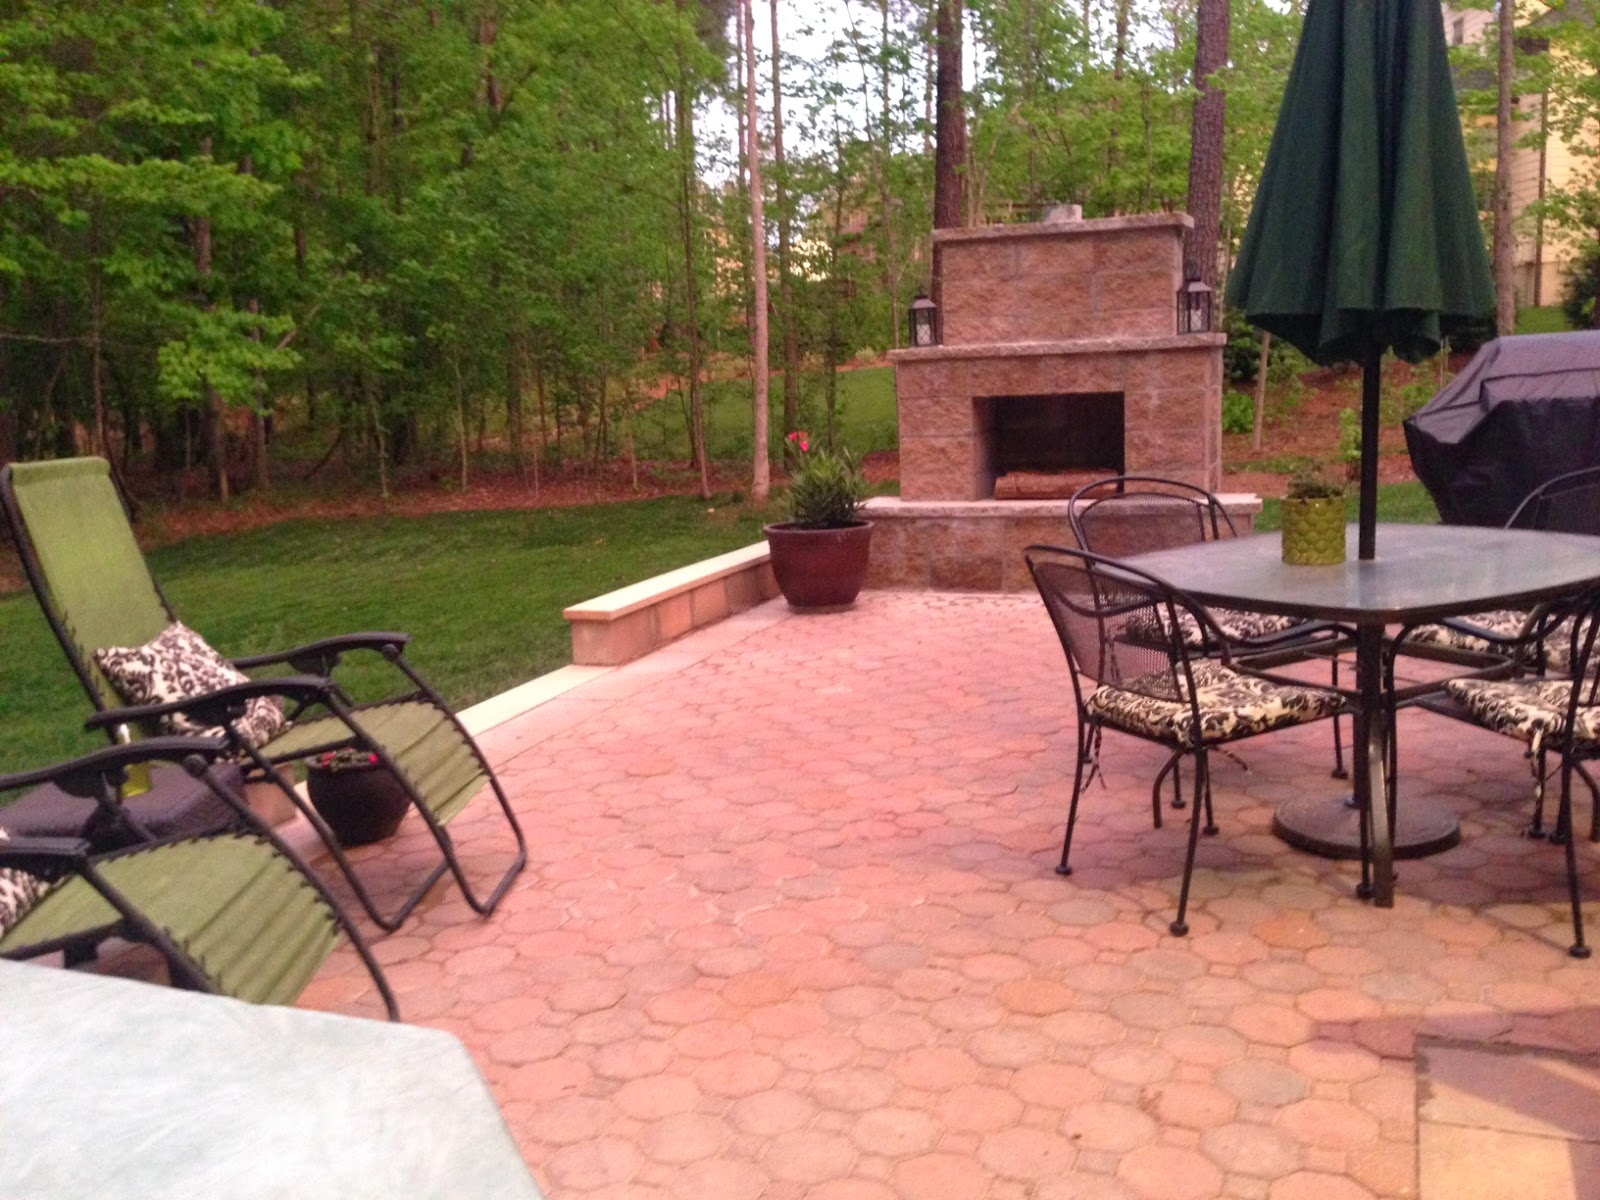 DIY Paver Patio And Outdoor Fireplace Reveal!